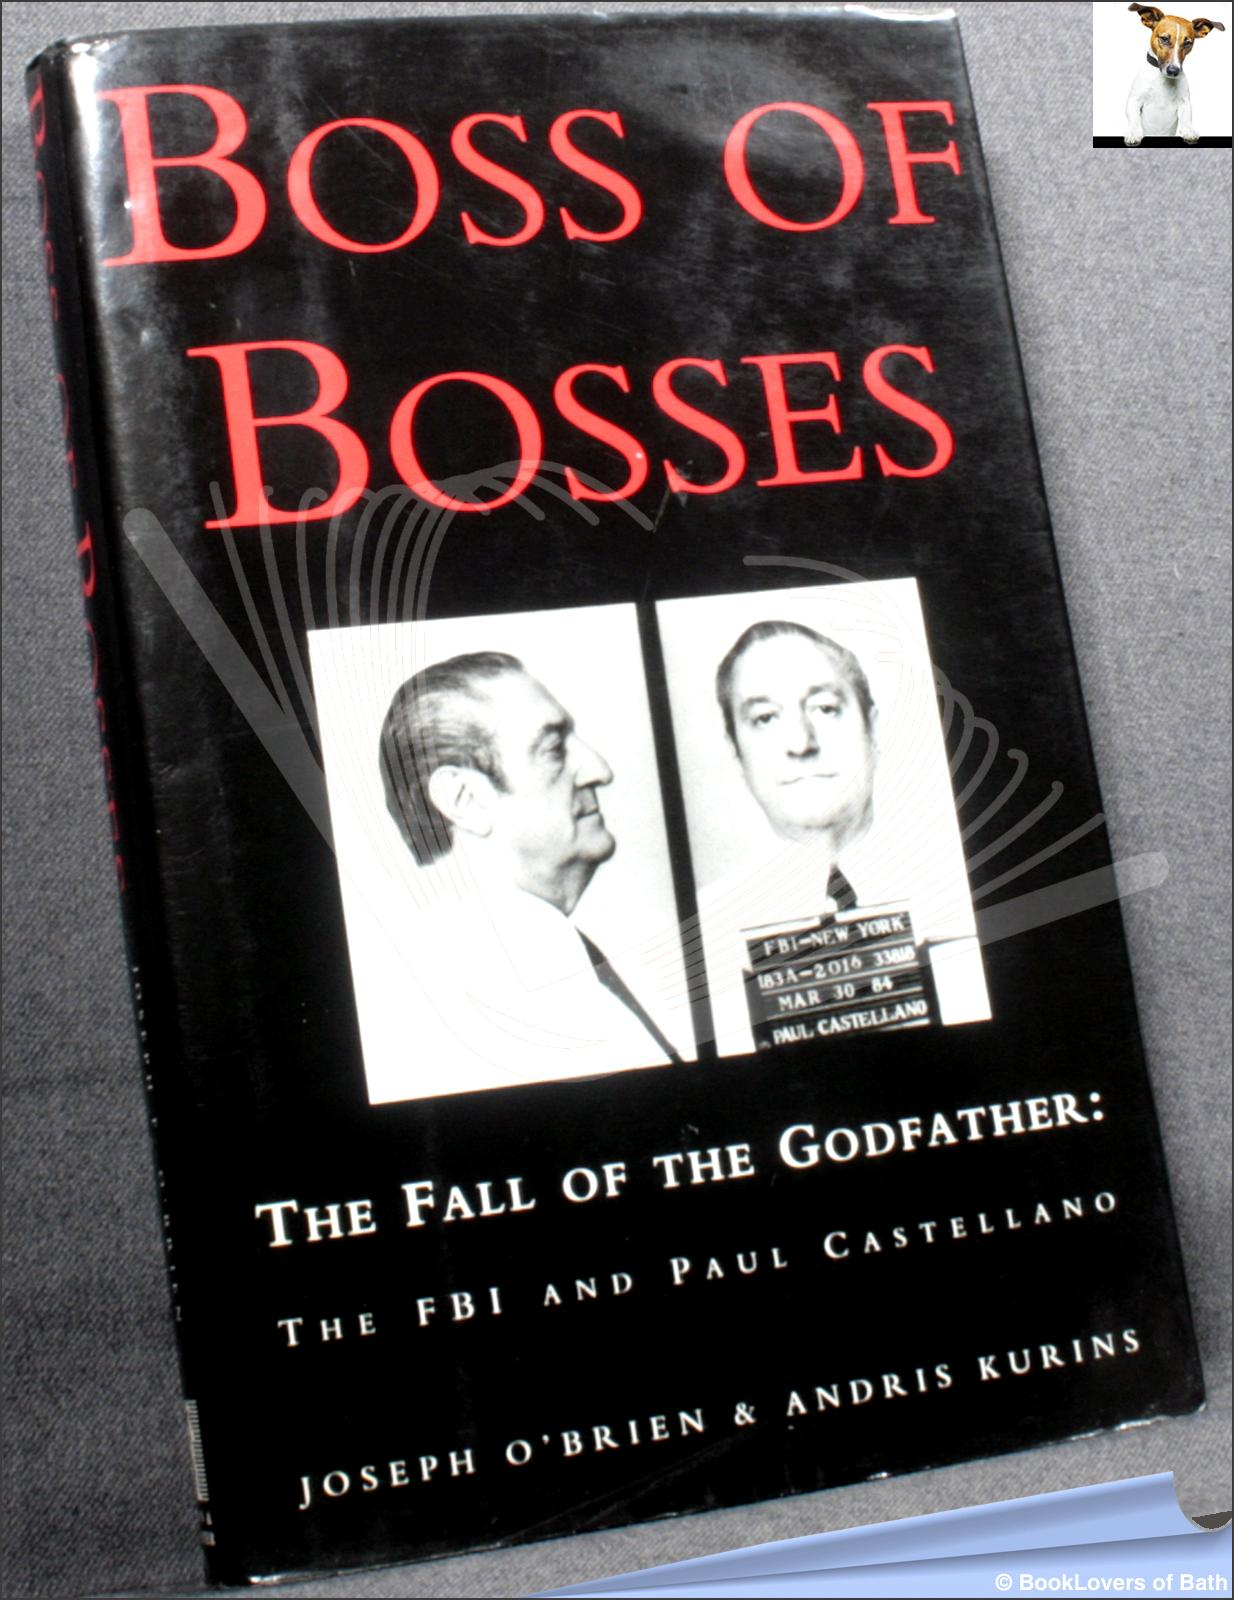 Boss of Bosses: The Fall of the Godfather, the FBI and Paul Castellano - Joseph F. O'Brien & Andris Kurins